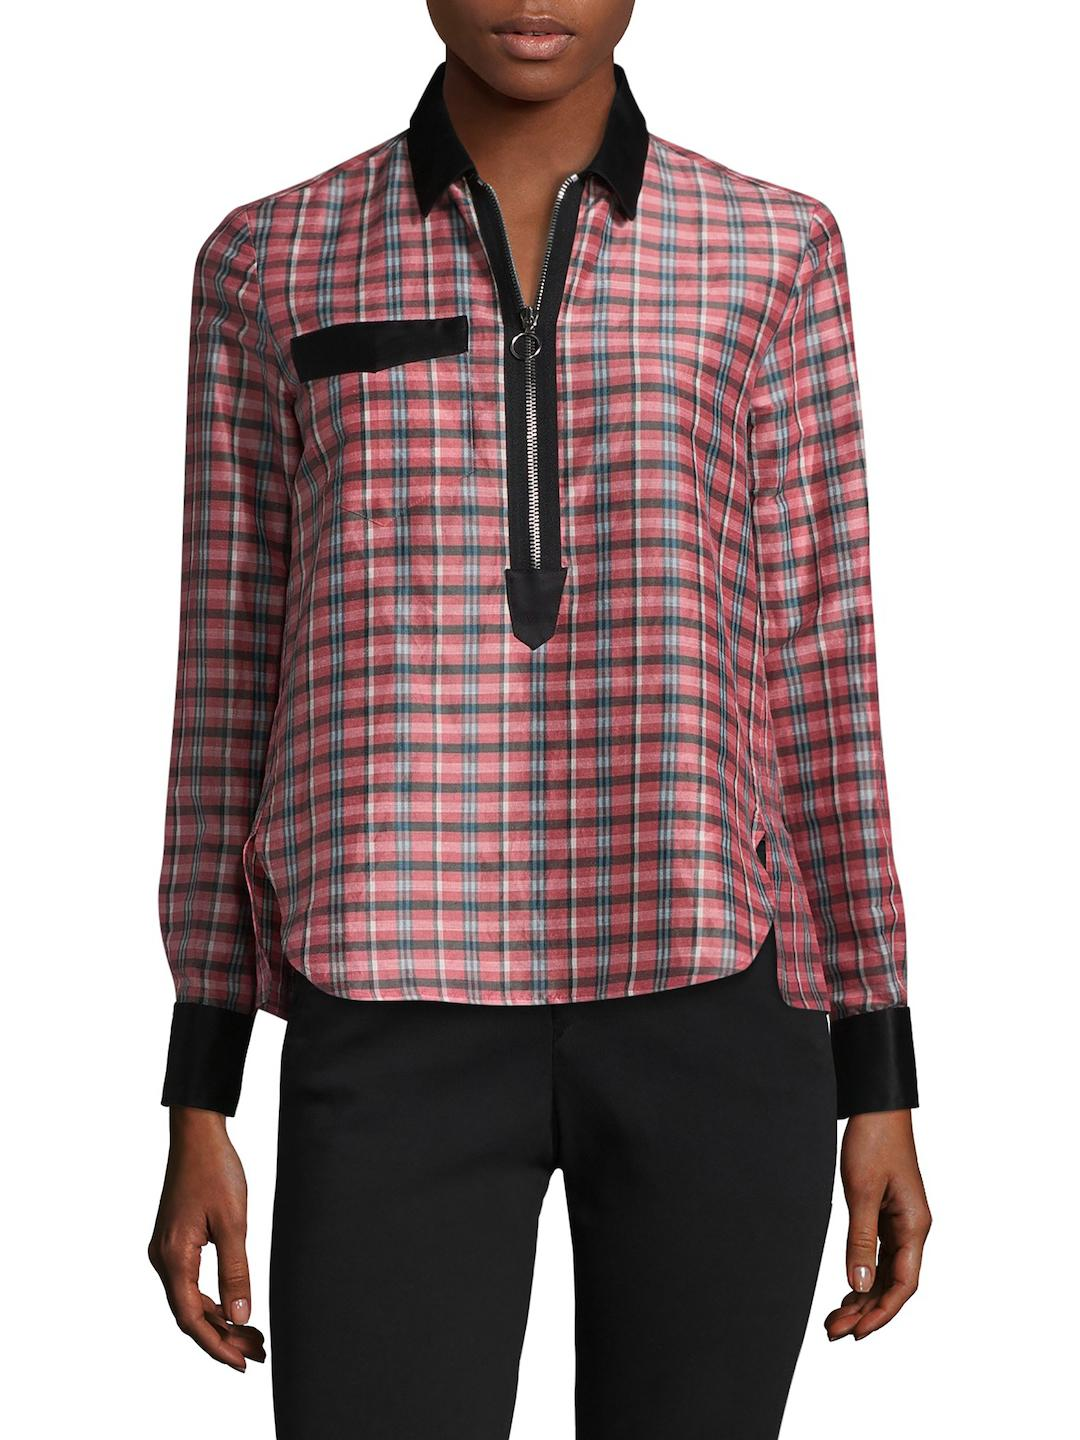 Isabel Marant Woman Mista Plaid Ramie And Silk-blend Top White Size 42 Isabel Marant Buy Cheap 2018 Sale Online pOcjUPoz8K